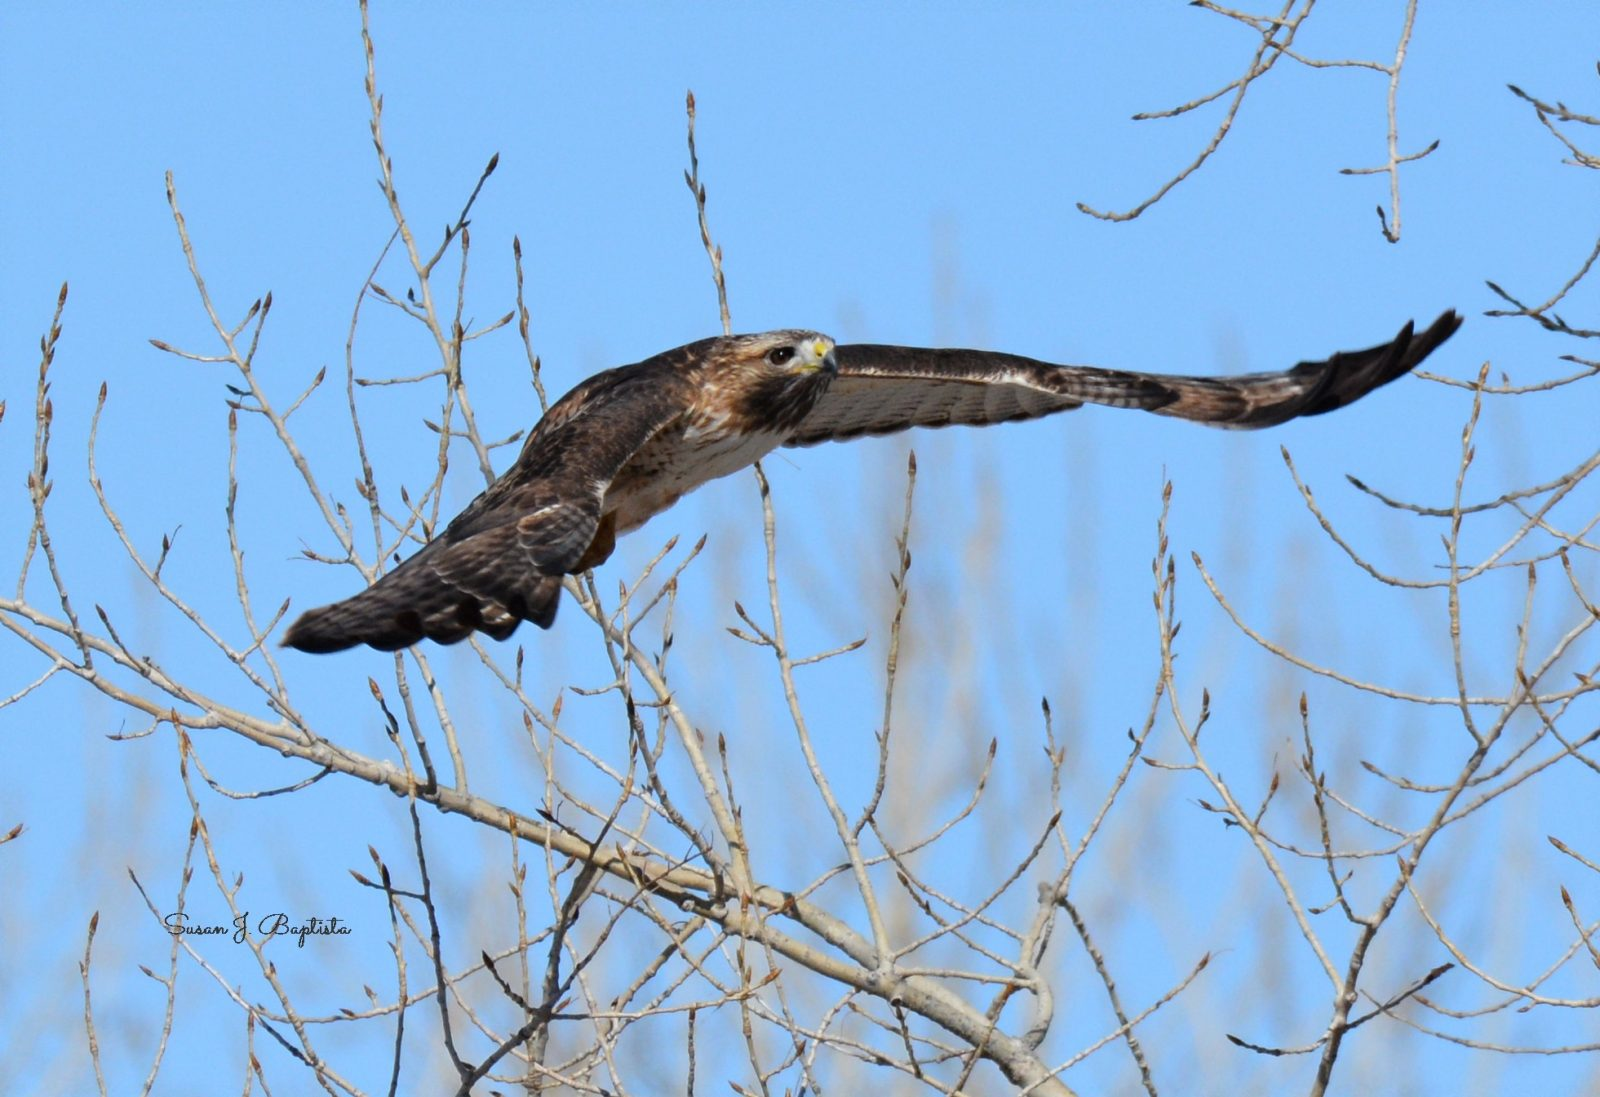 Soaring Red Tail